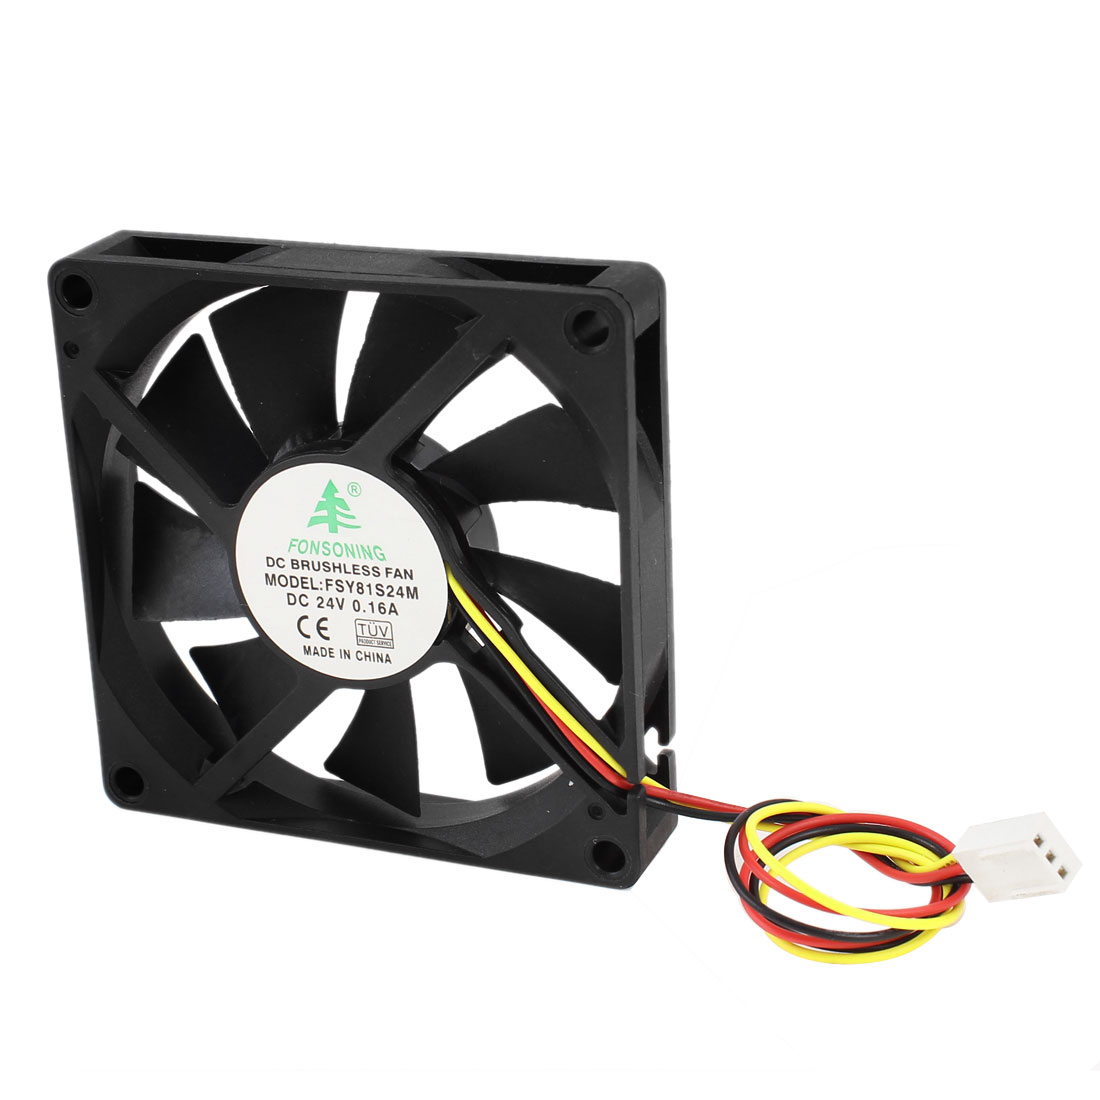 DC 24V 0.16A 3 Pin Connector PC Computer Case Cooling Fan 80mm x 80mm